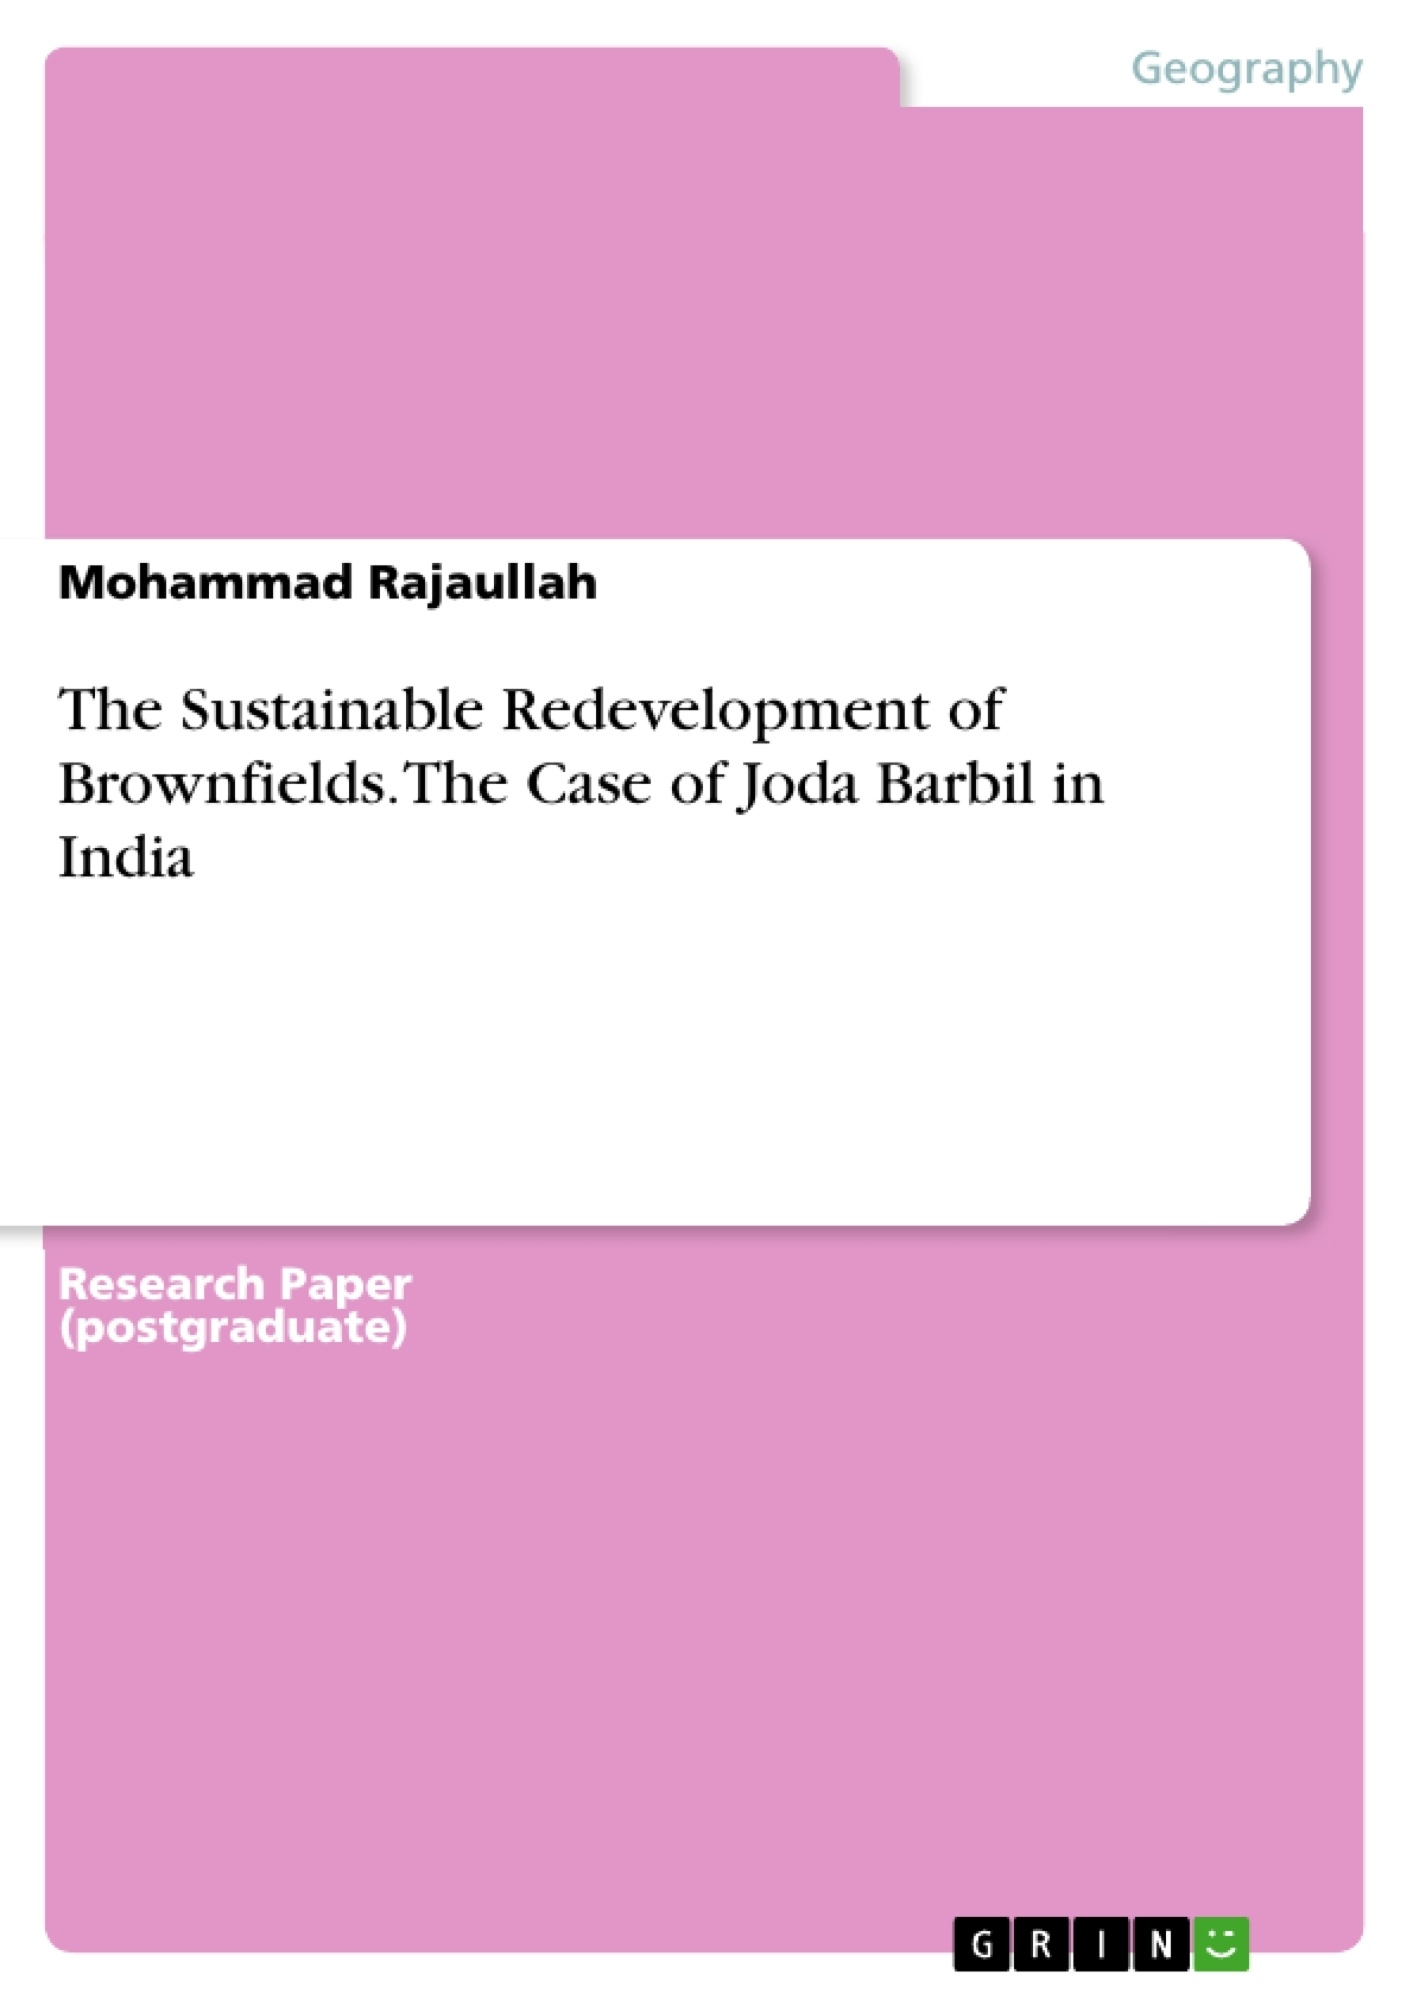 Title: The Sustainable Redevelopment of Brownfields. The Case of Joda Barbil in India